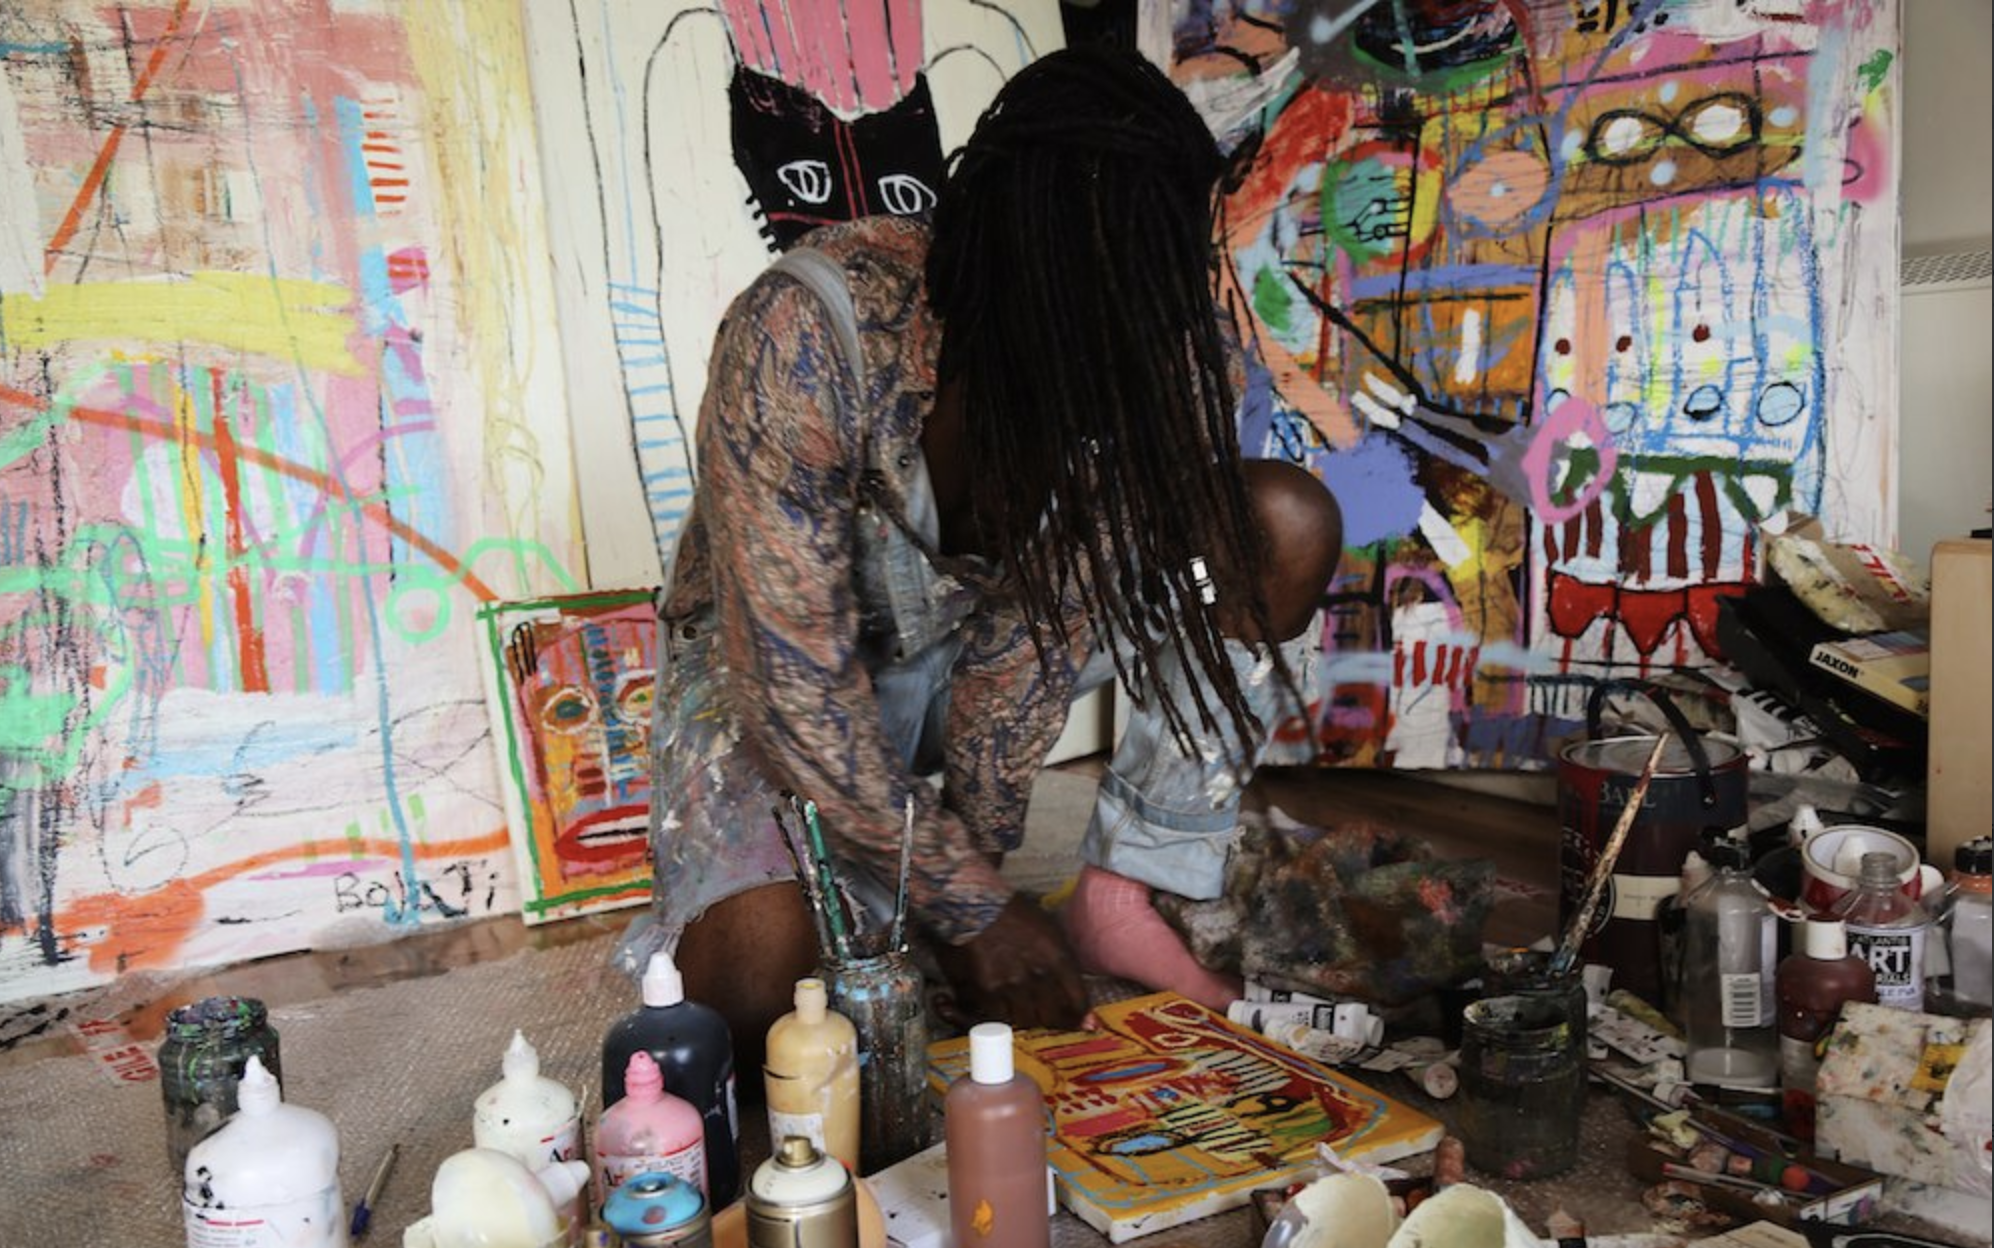 Photograph of Adébayo Bolaji, an artist at MAKEMORE festival